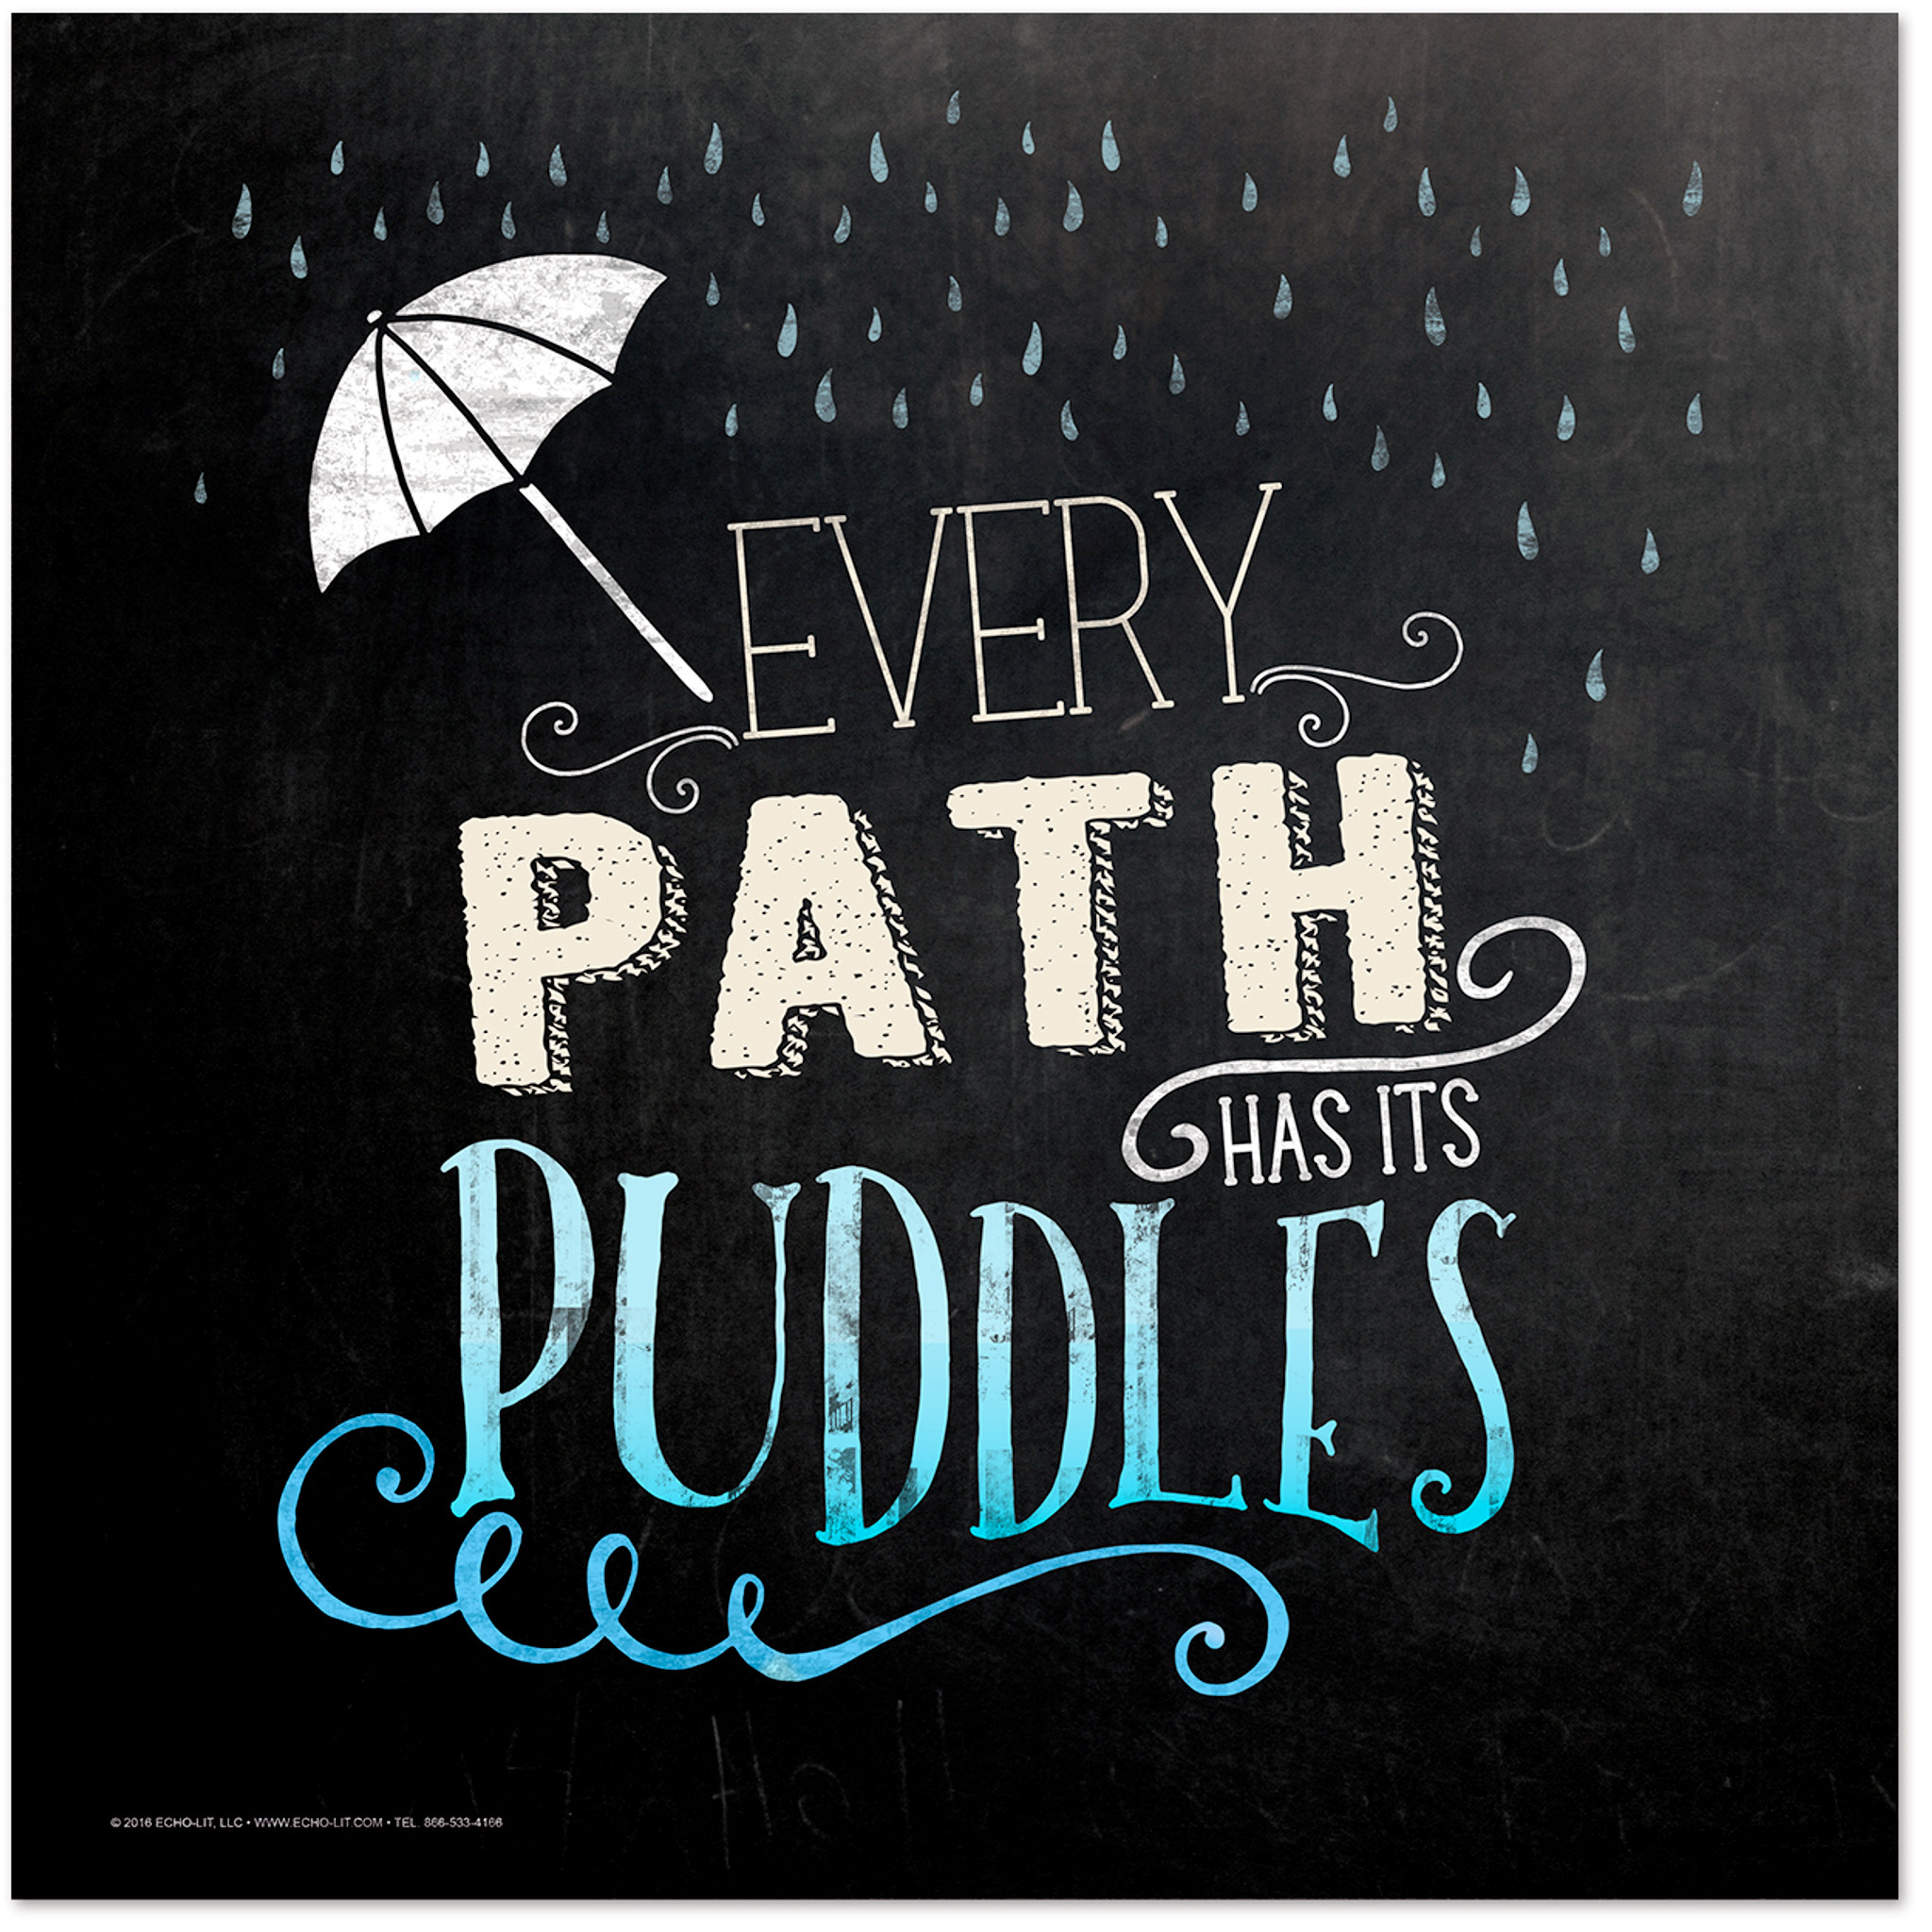 Chalkboard Quotes: Every Path Has Puddles Inspirational Chalkboard Style